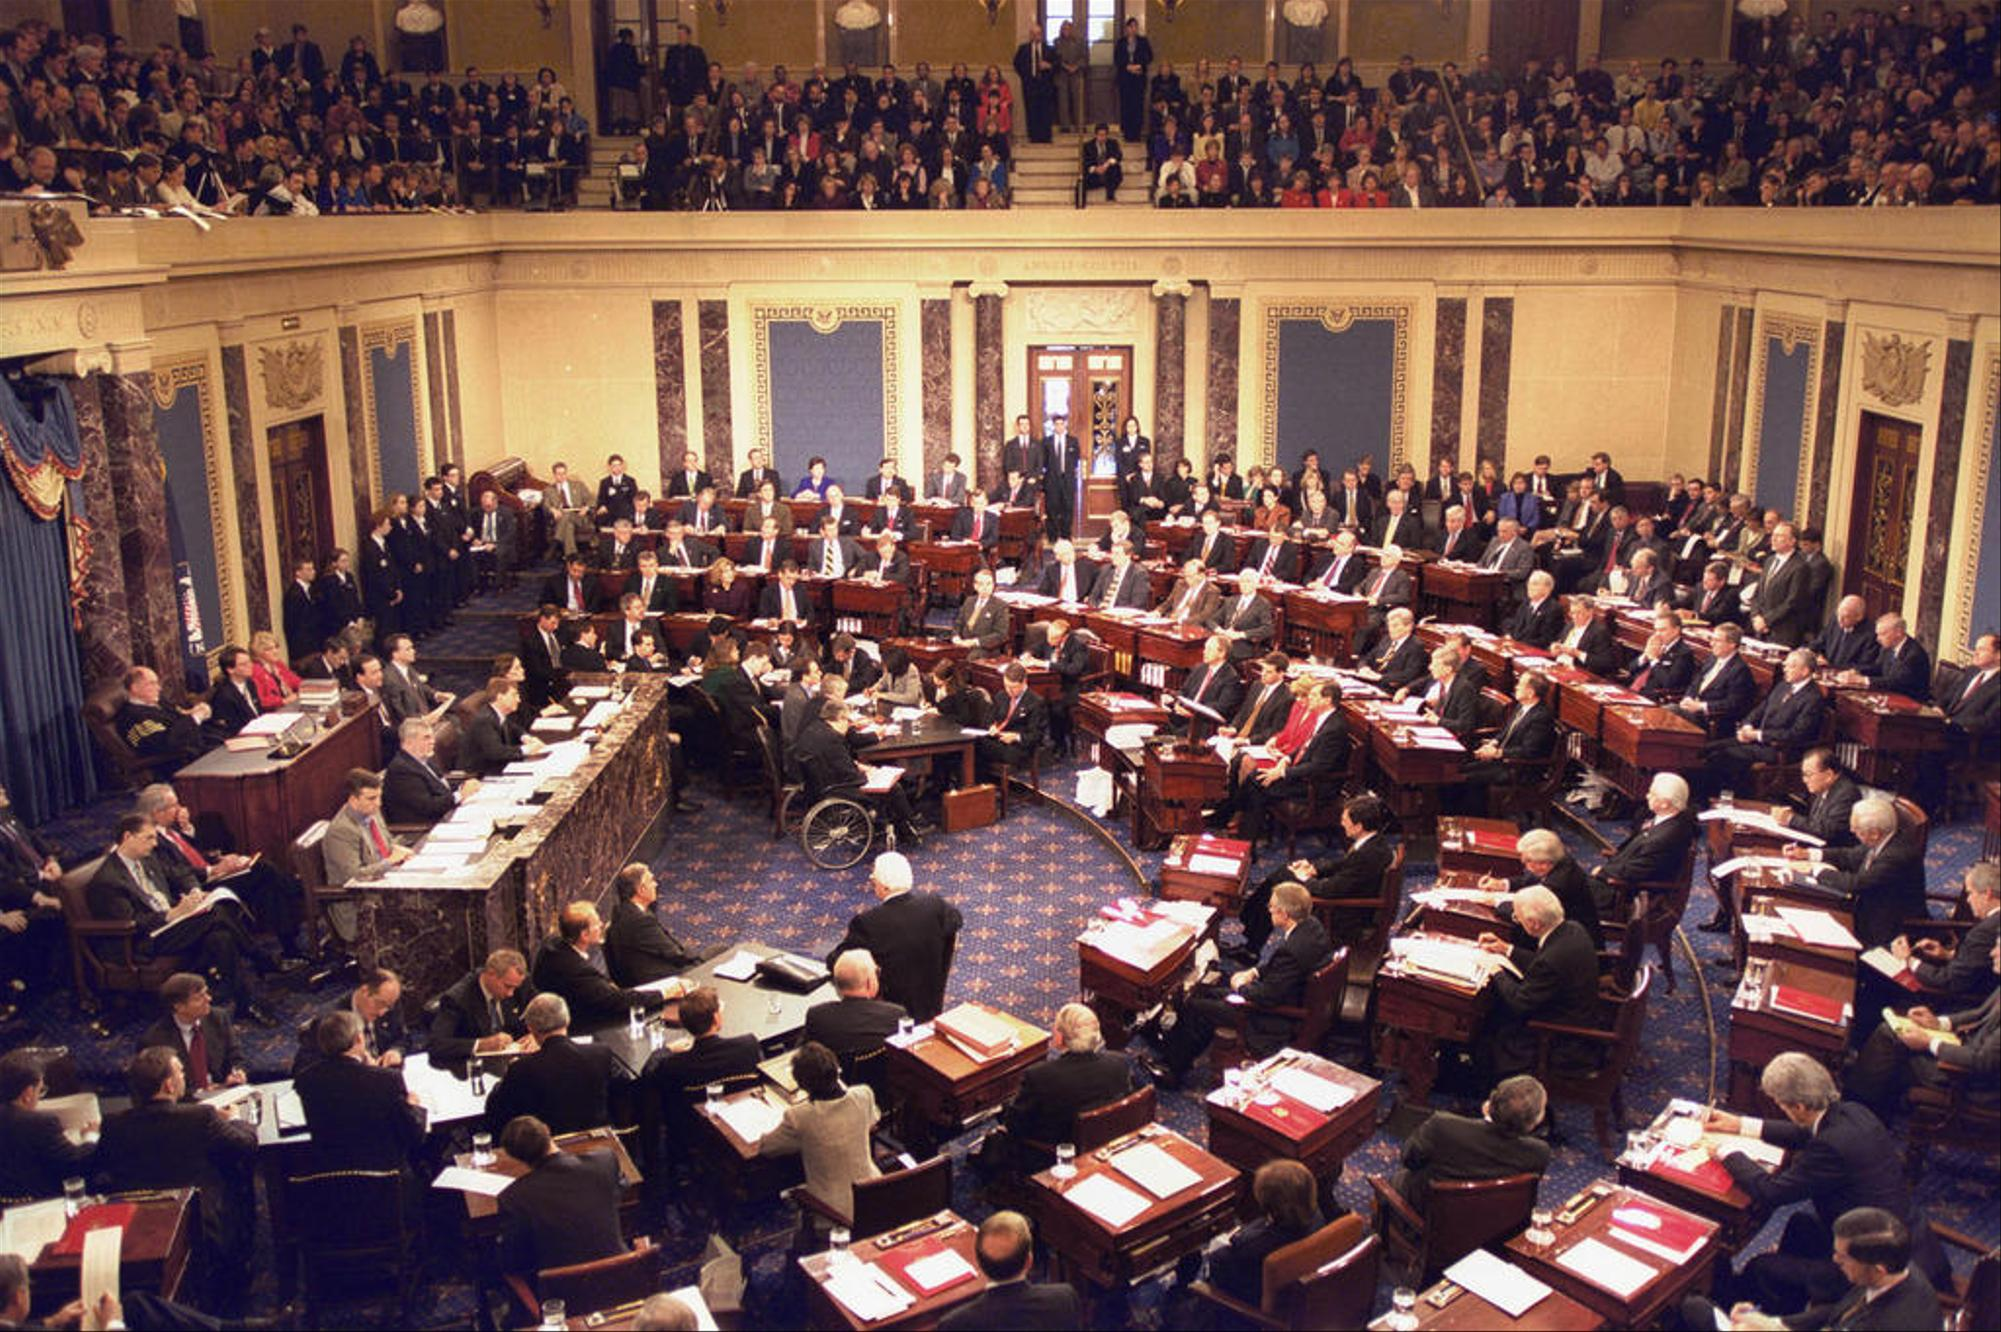 The impeachment trial of President Clinton in 1999, Chief Justice William Rehnquist presiding Senate in session.jpg